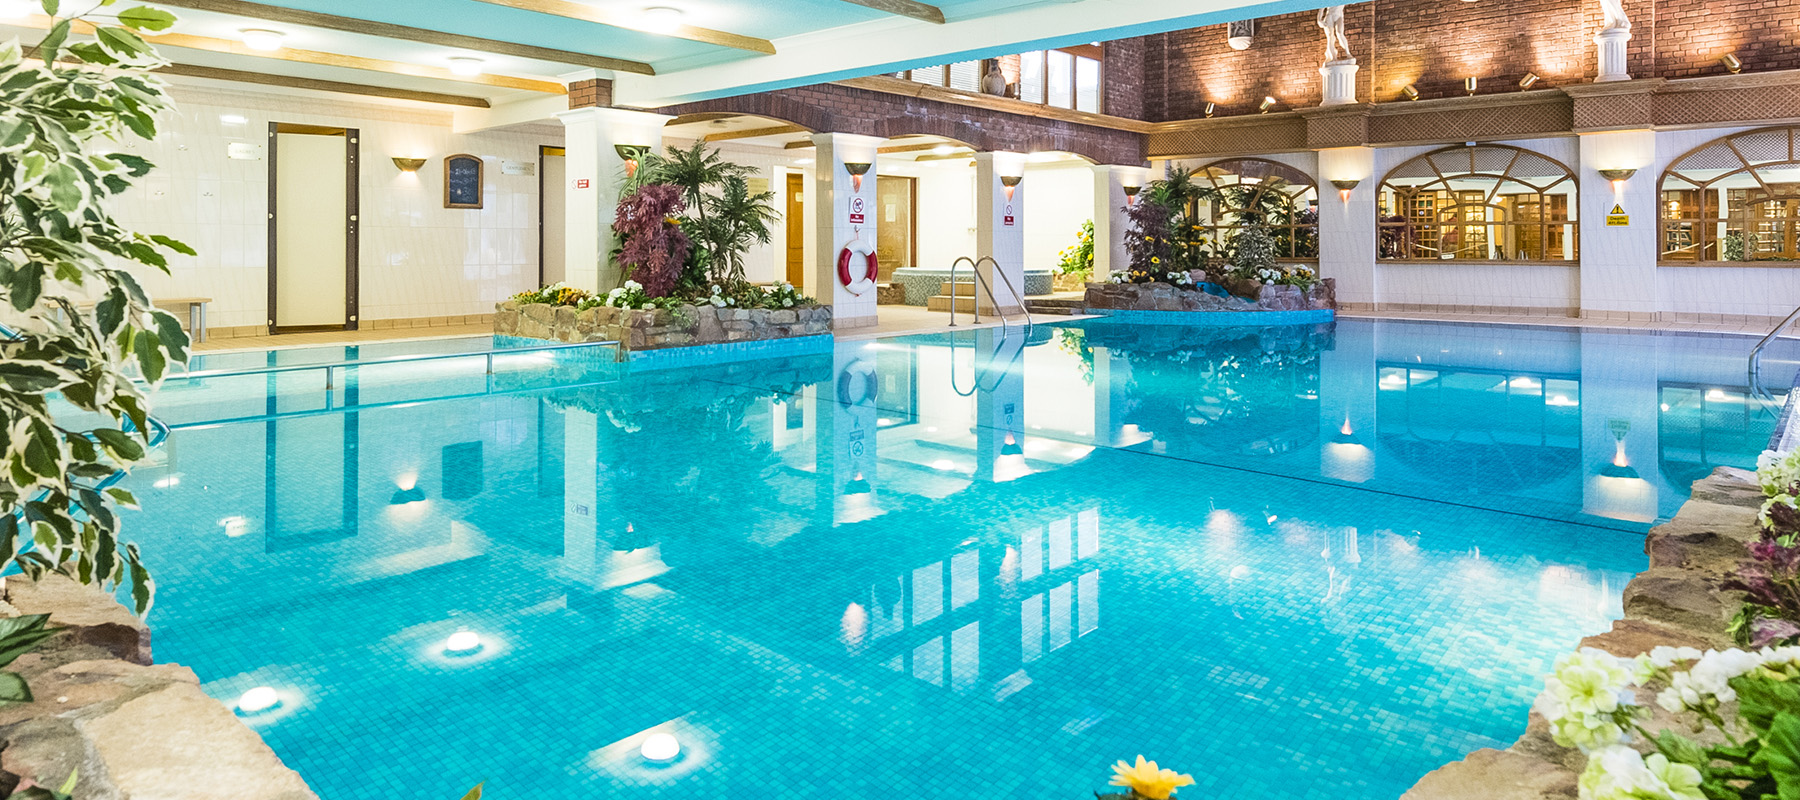 Hotels With Swimming Pools In Wales Sport Inpiration Gallery